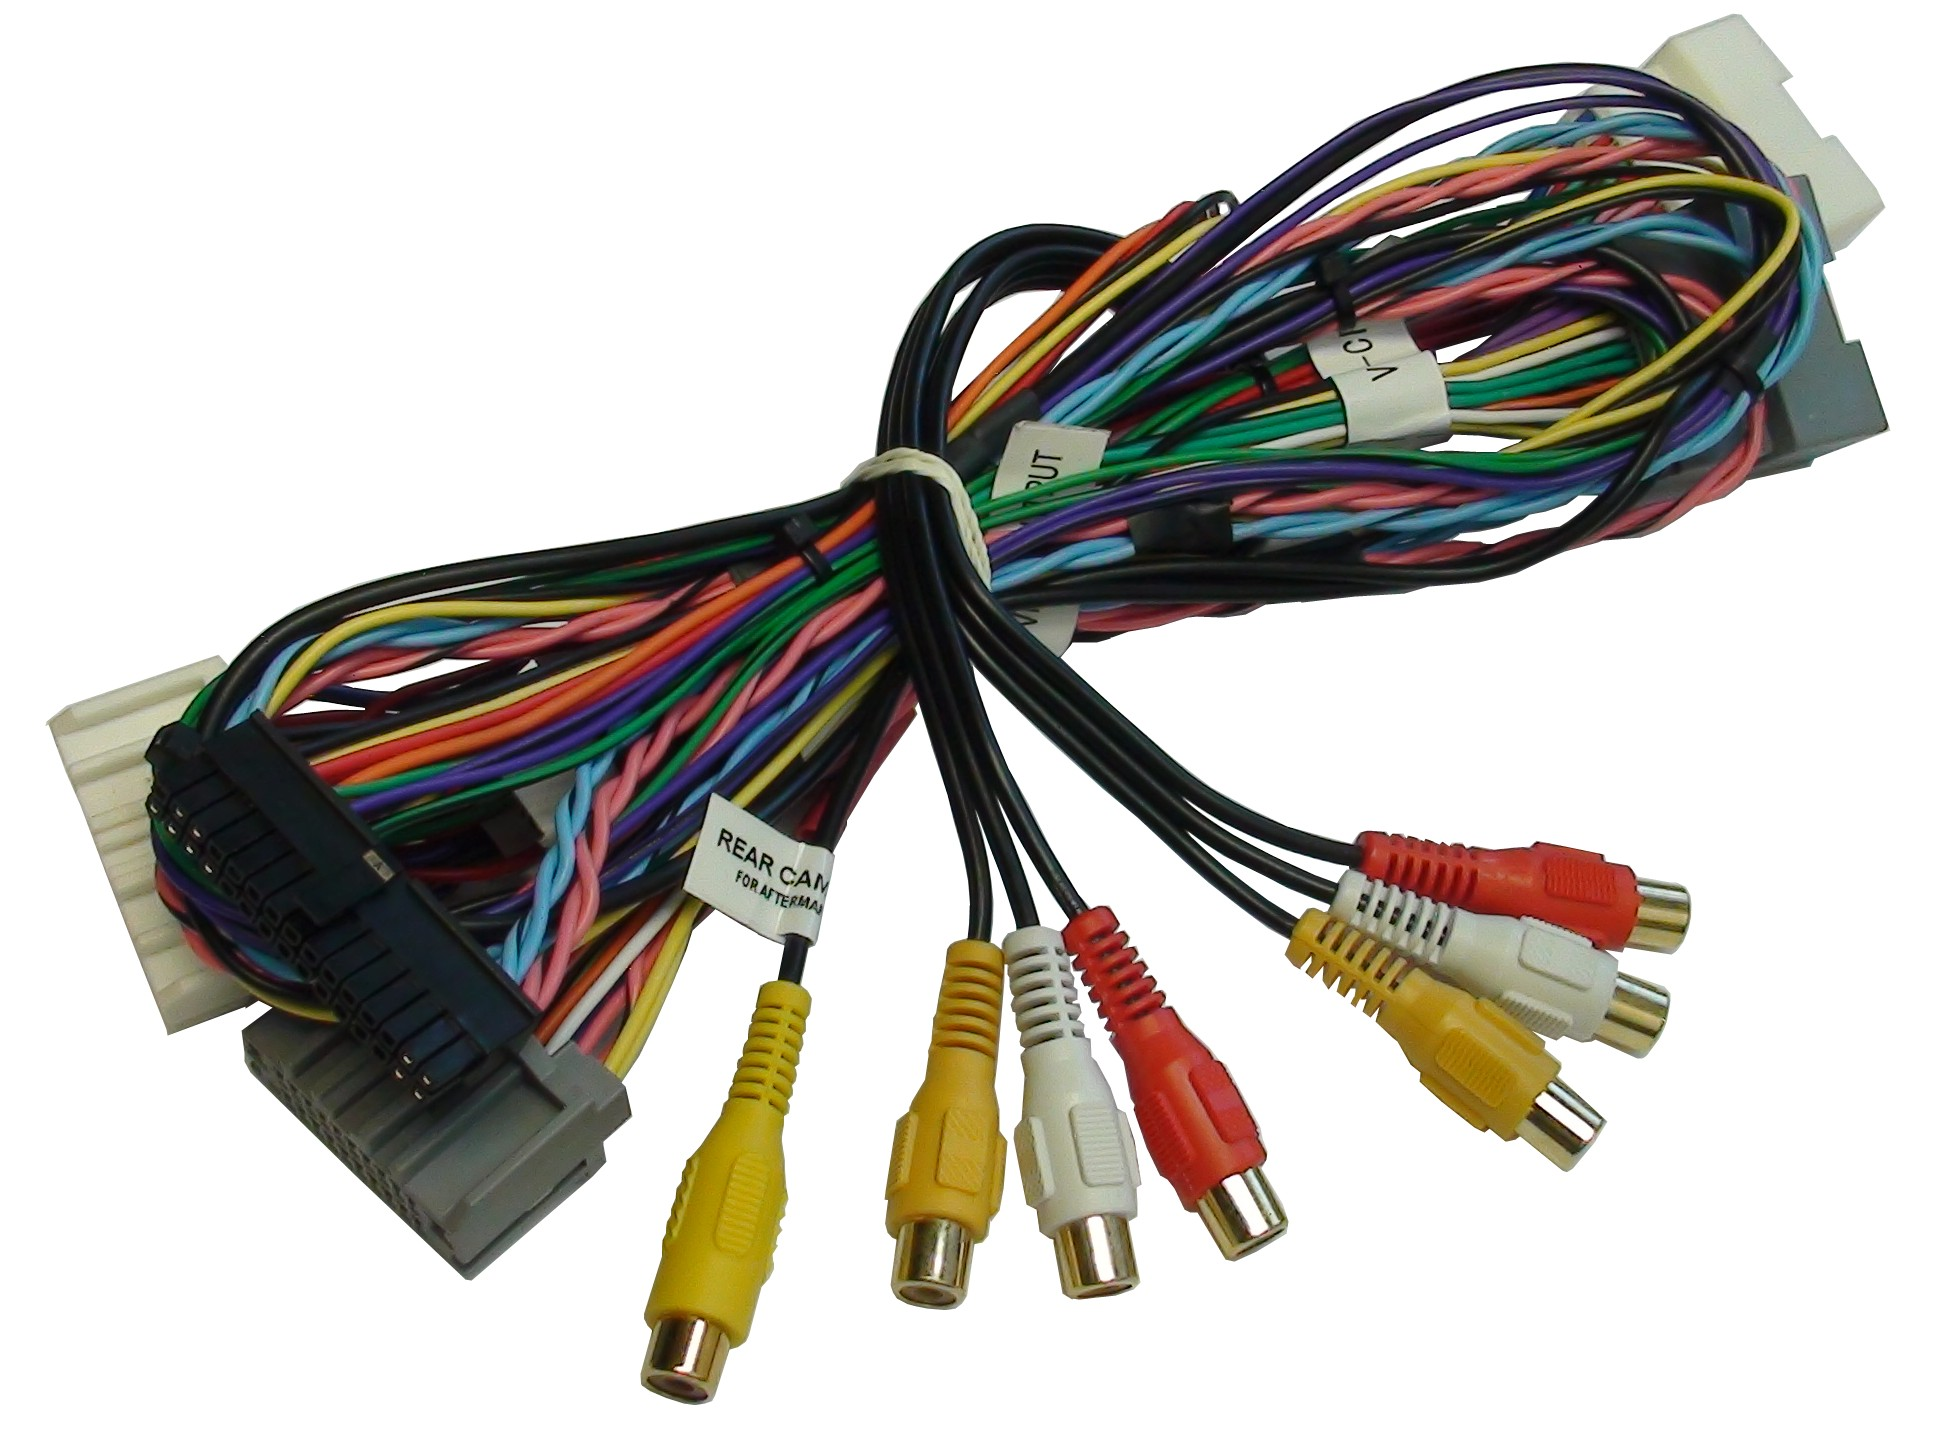 Uconnect Wiring Diagram Library Cable As Well Phone Jack Harness Lockpick C8 Chrysler 300 Install Rh Coastaletech Com Ram 1500 Patriot